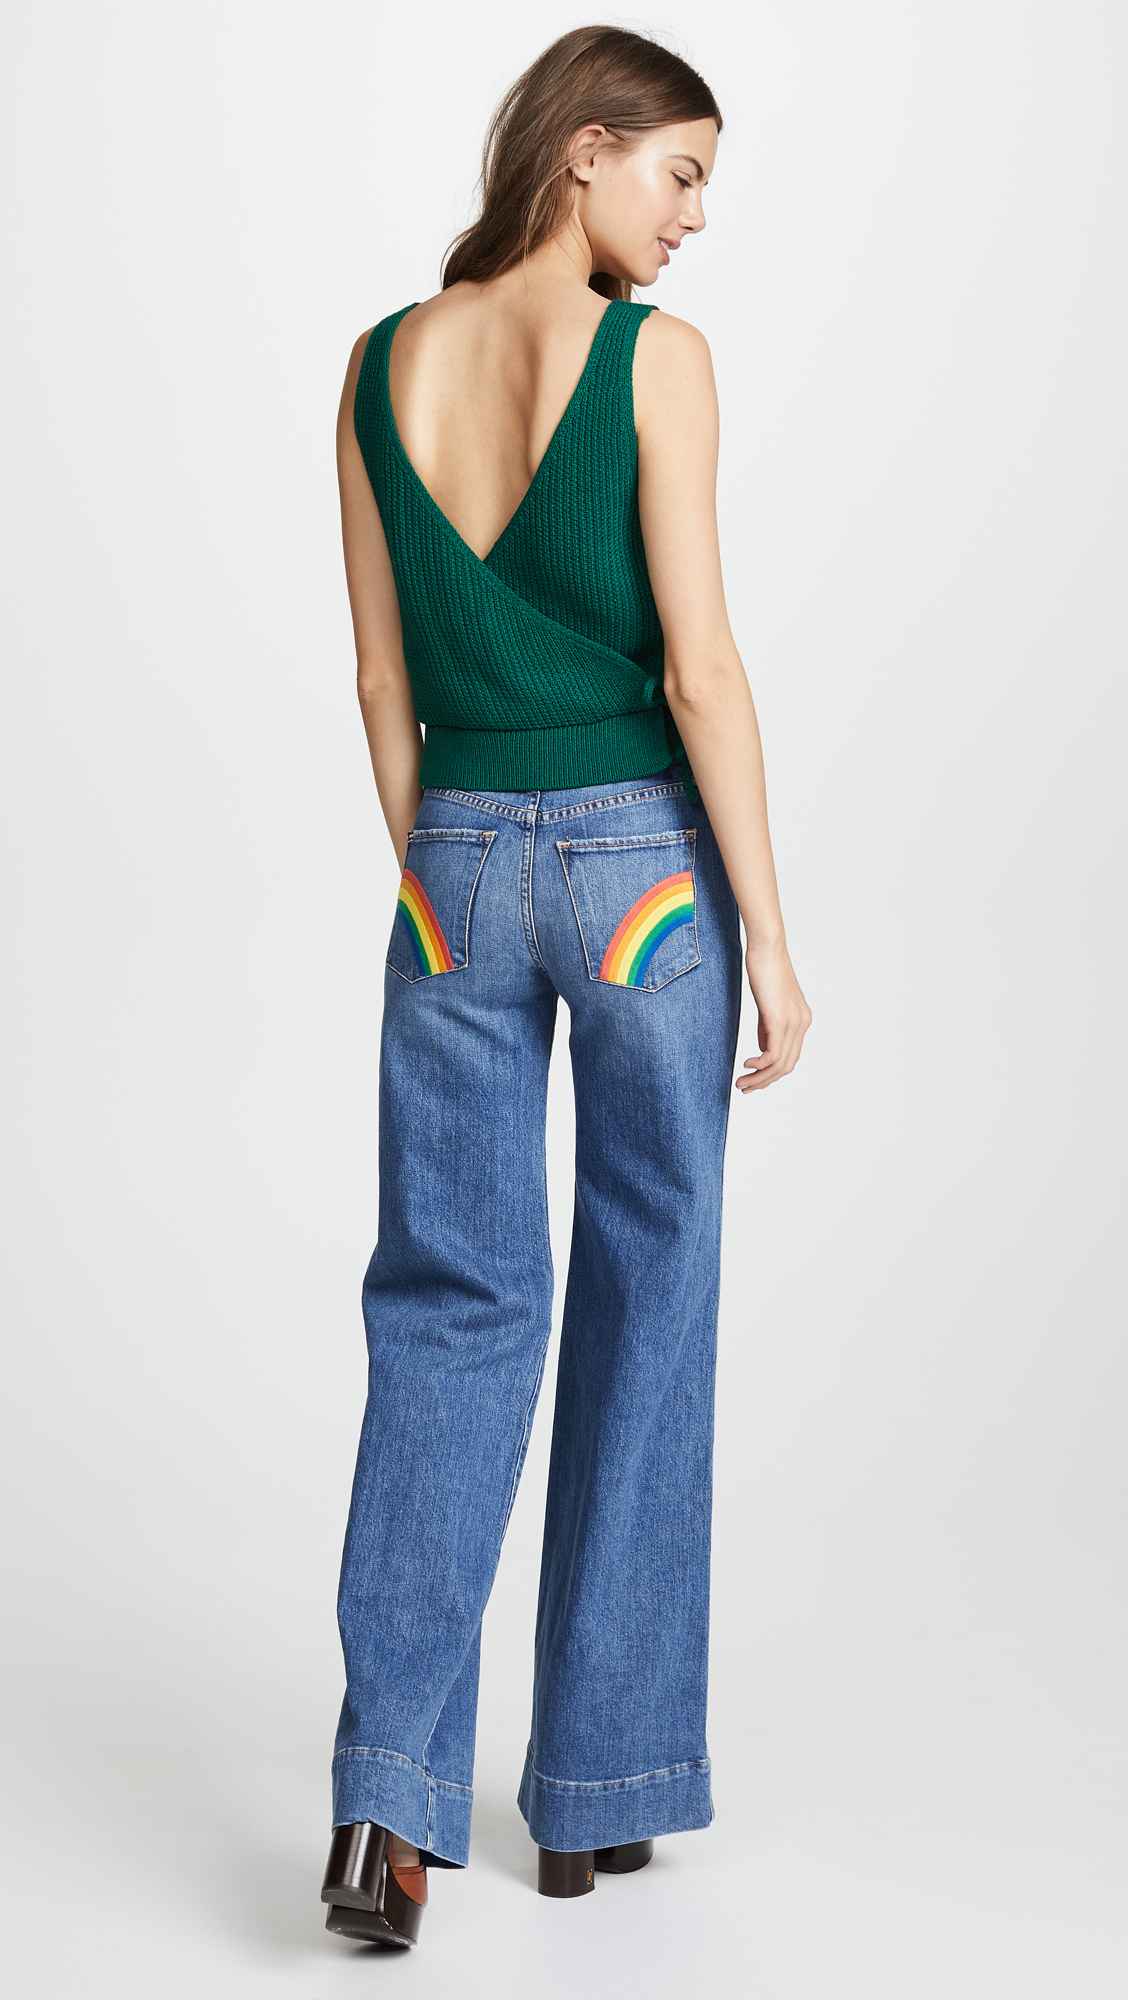 AO.LA by alice + olivia, $350 @shopbop.com